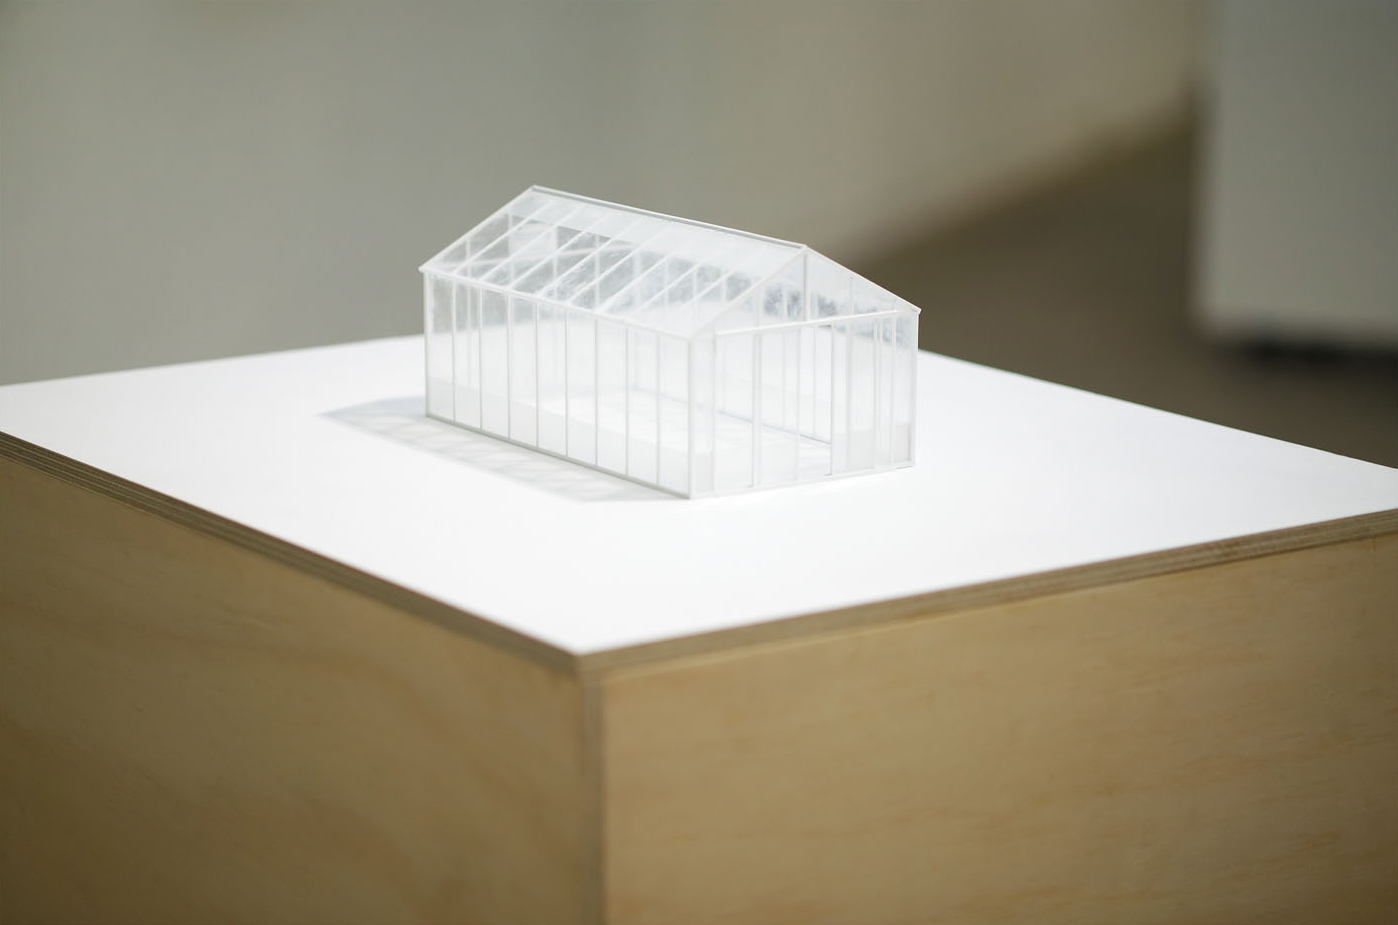 GLASS HOUSE Microscope Slides, Plastic, Acrylic on Plywood 33 x 63.5 x 52 cm